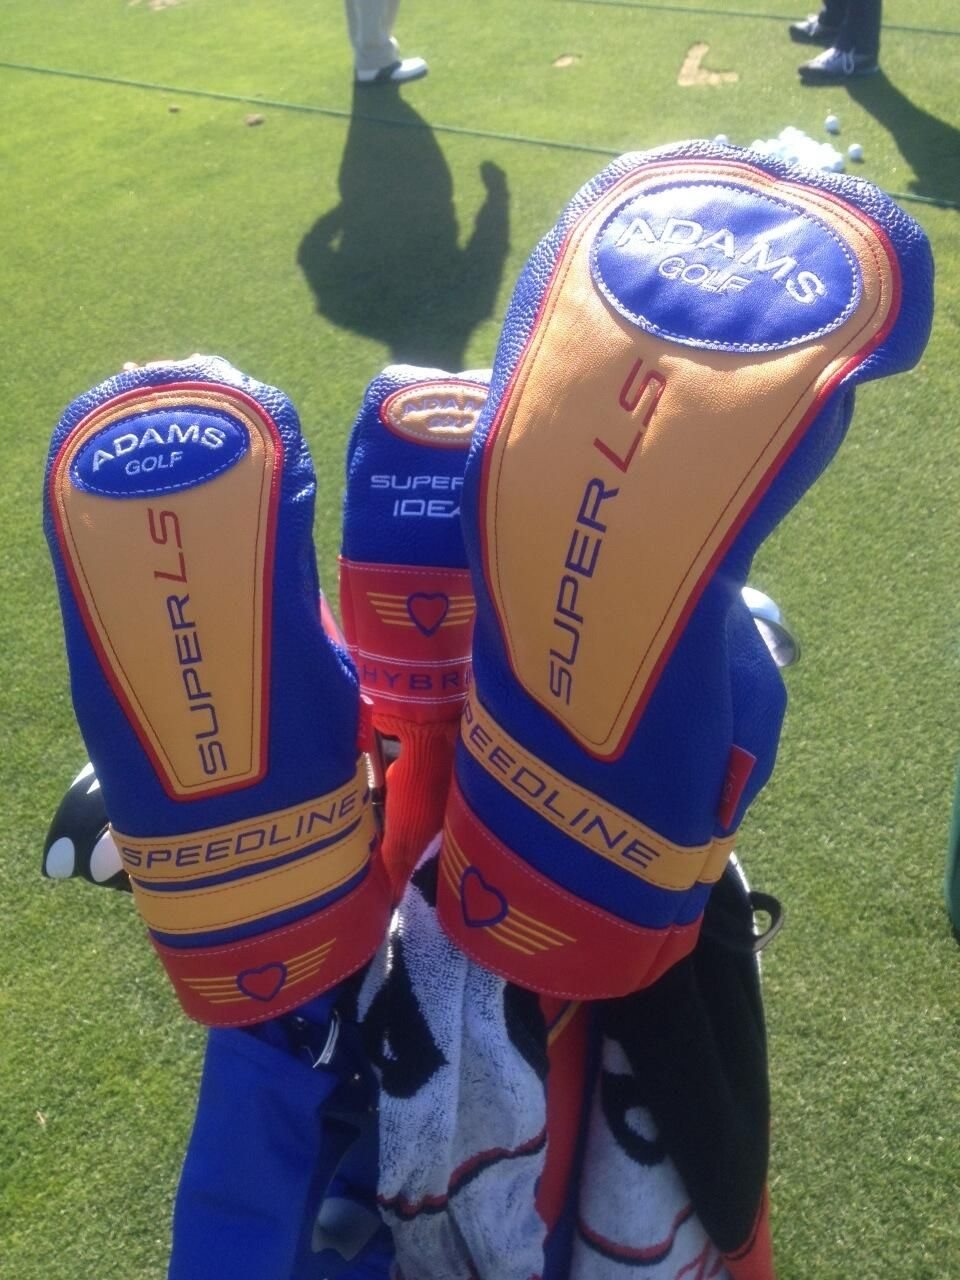 4481f12b095 Adams Golf and Southwest Airlines made up special sets of headcovers for  all the Adams staff players to use this season. They debuted at the Shell  Houston ...